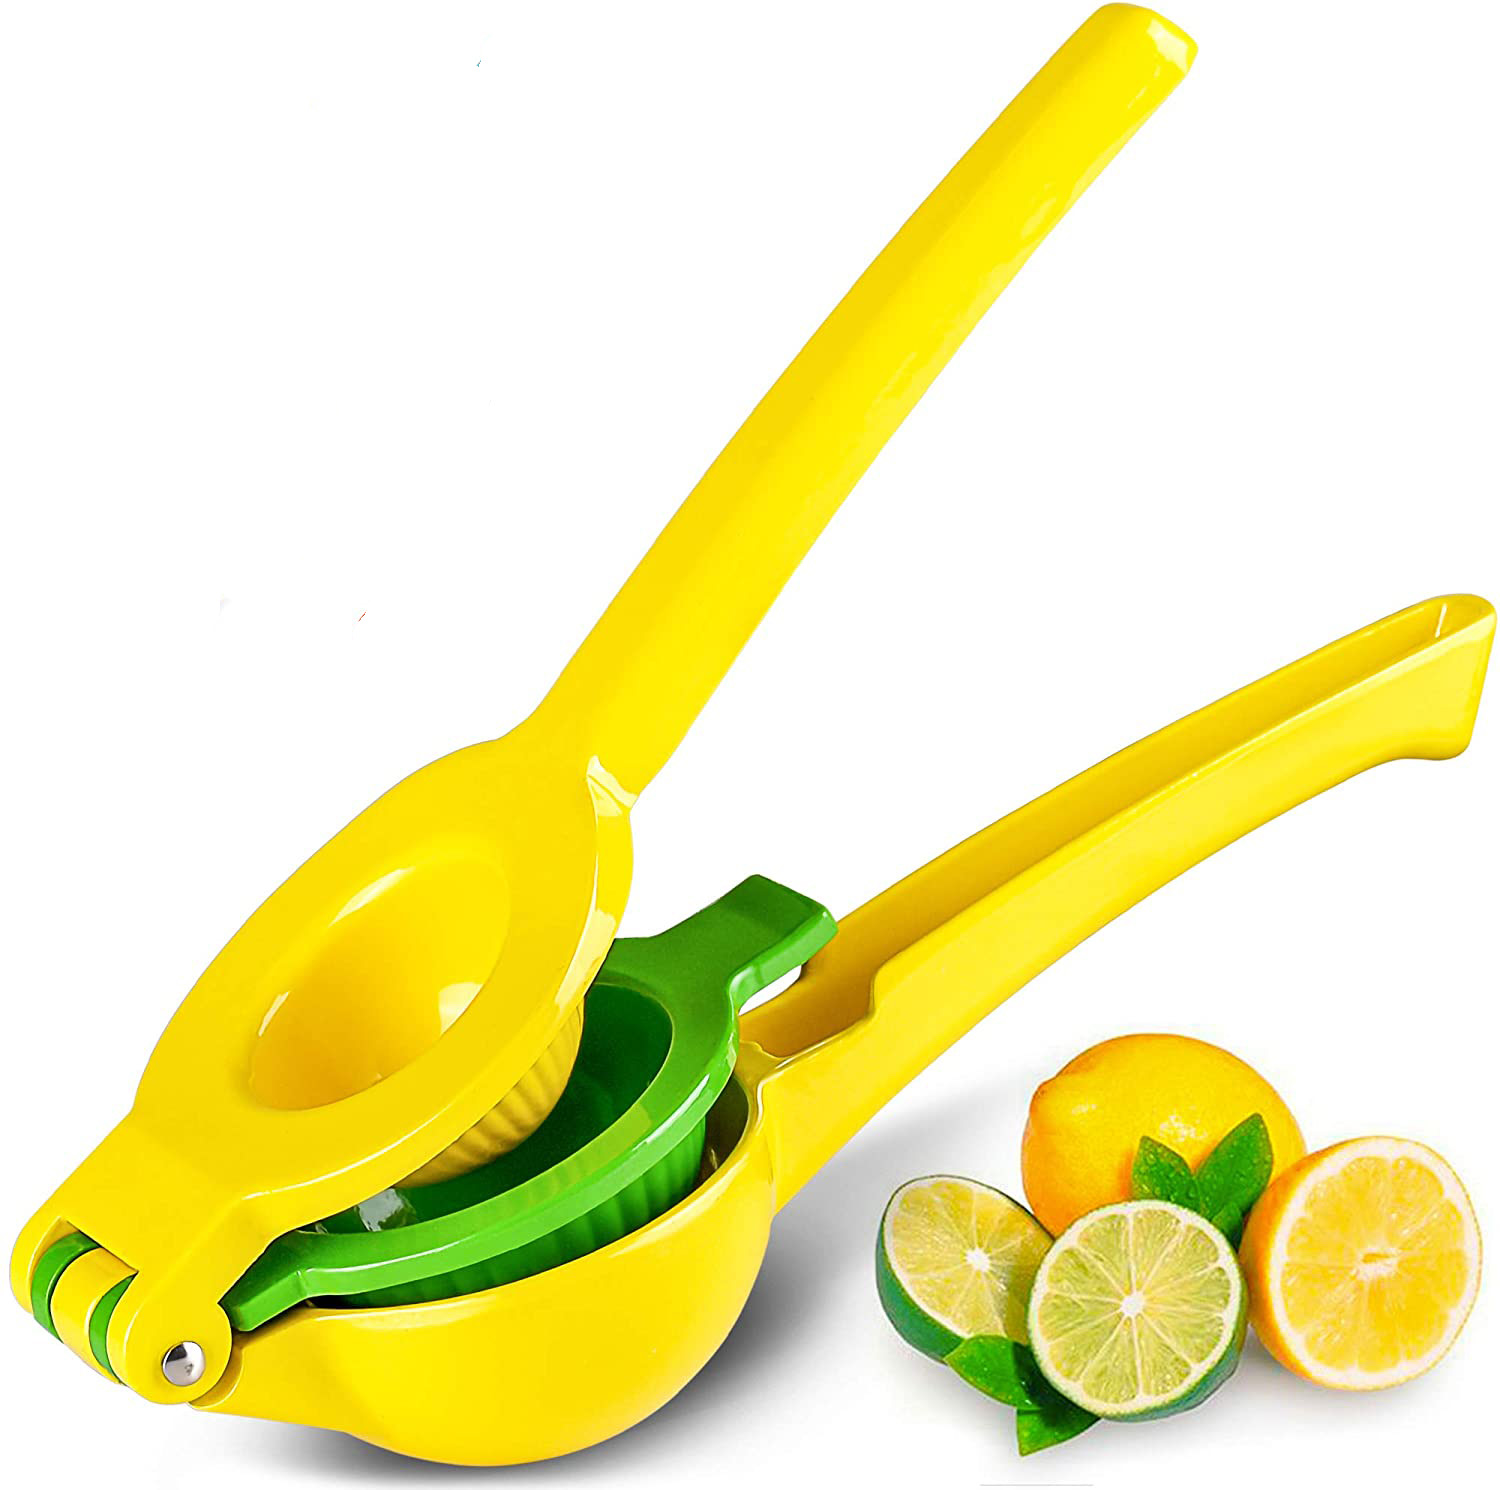 Zulay Premium Quality Squeezer with lemons and limes beside the squeeze